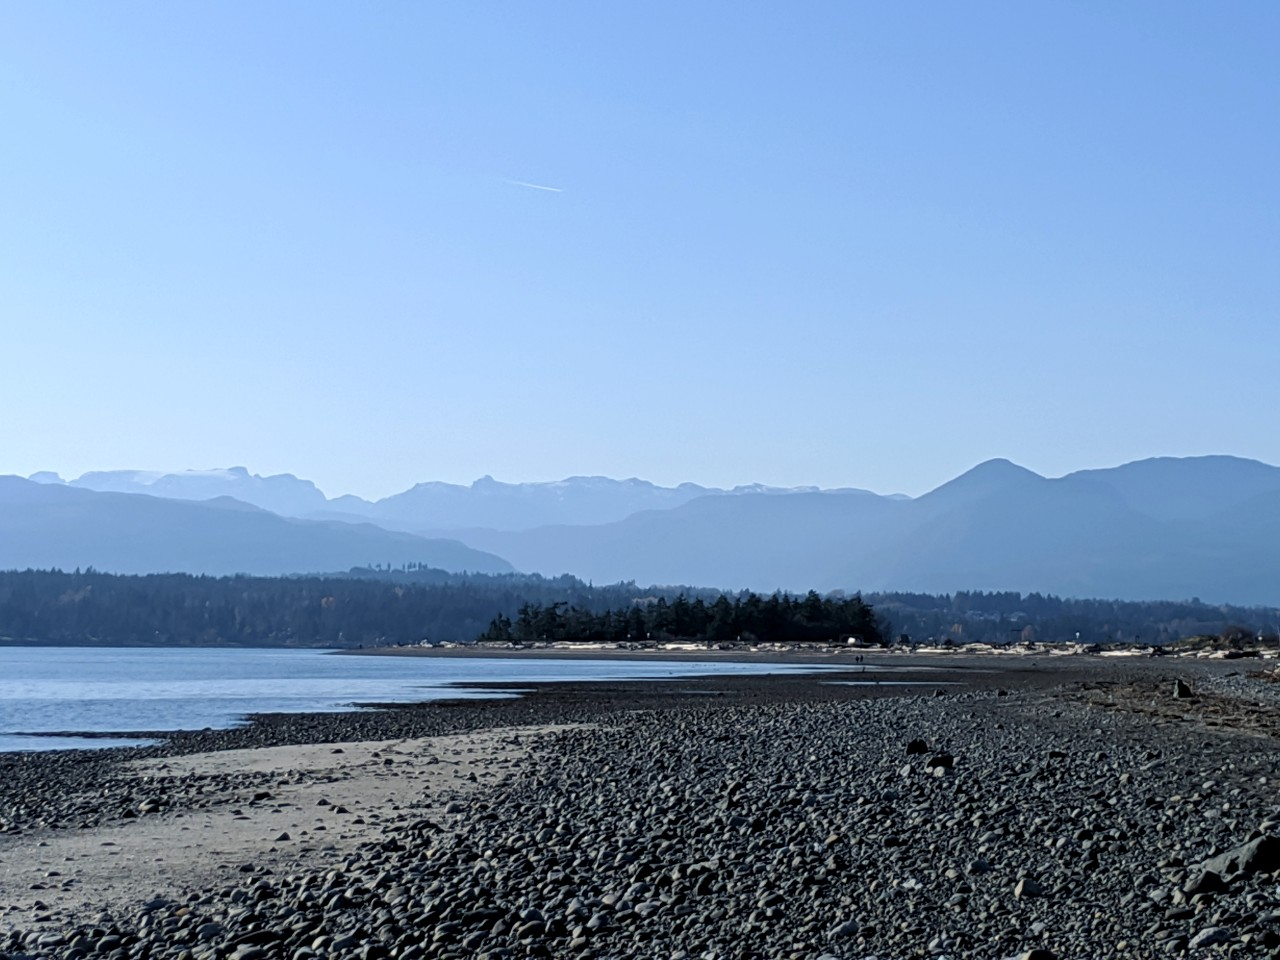 Rocky beach with views of mountains in Comox, Vancouver Island